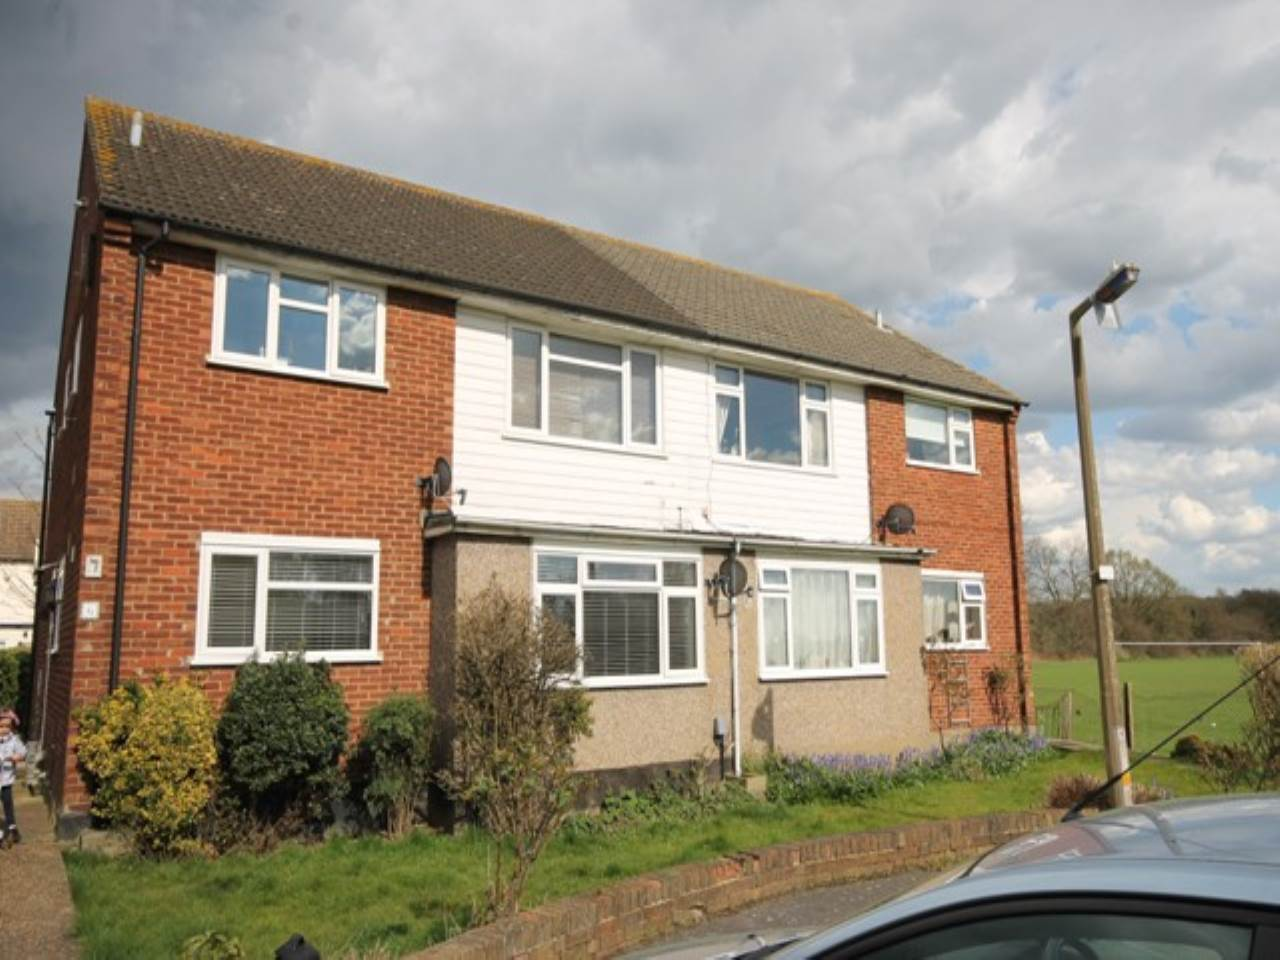 2 bed flat to rent in Loughton, IG10